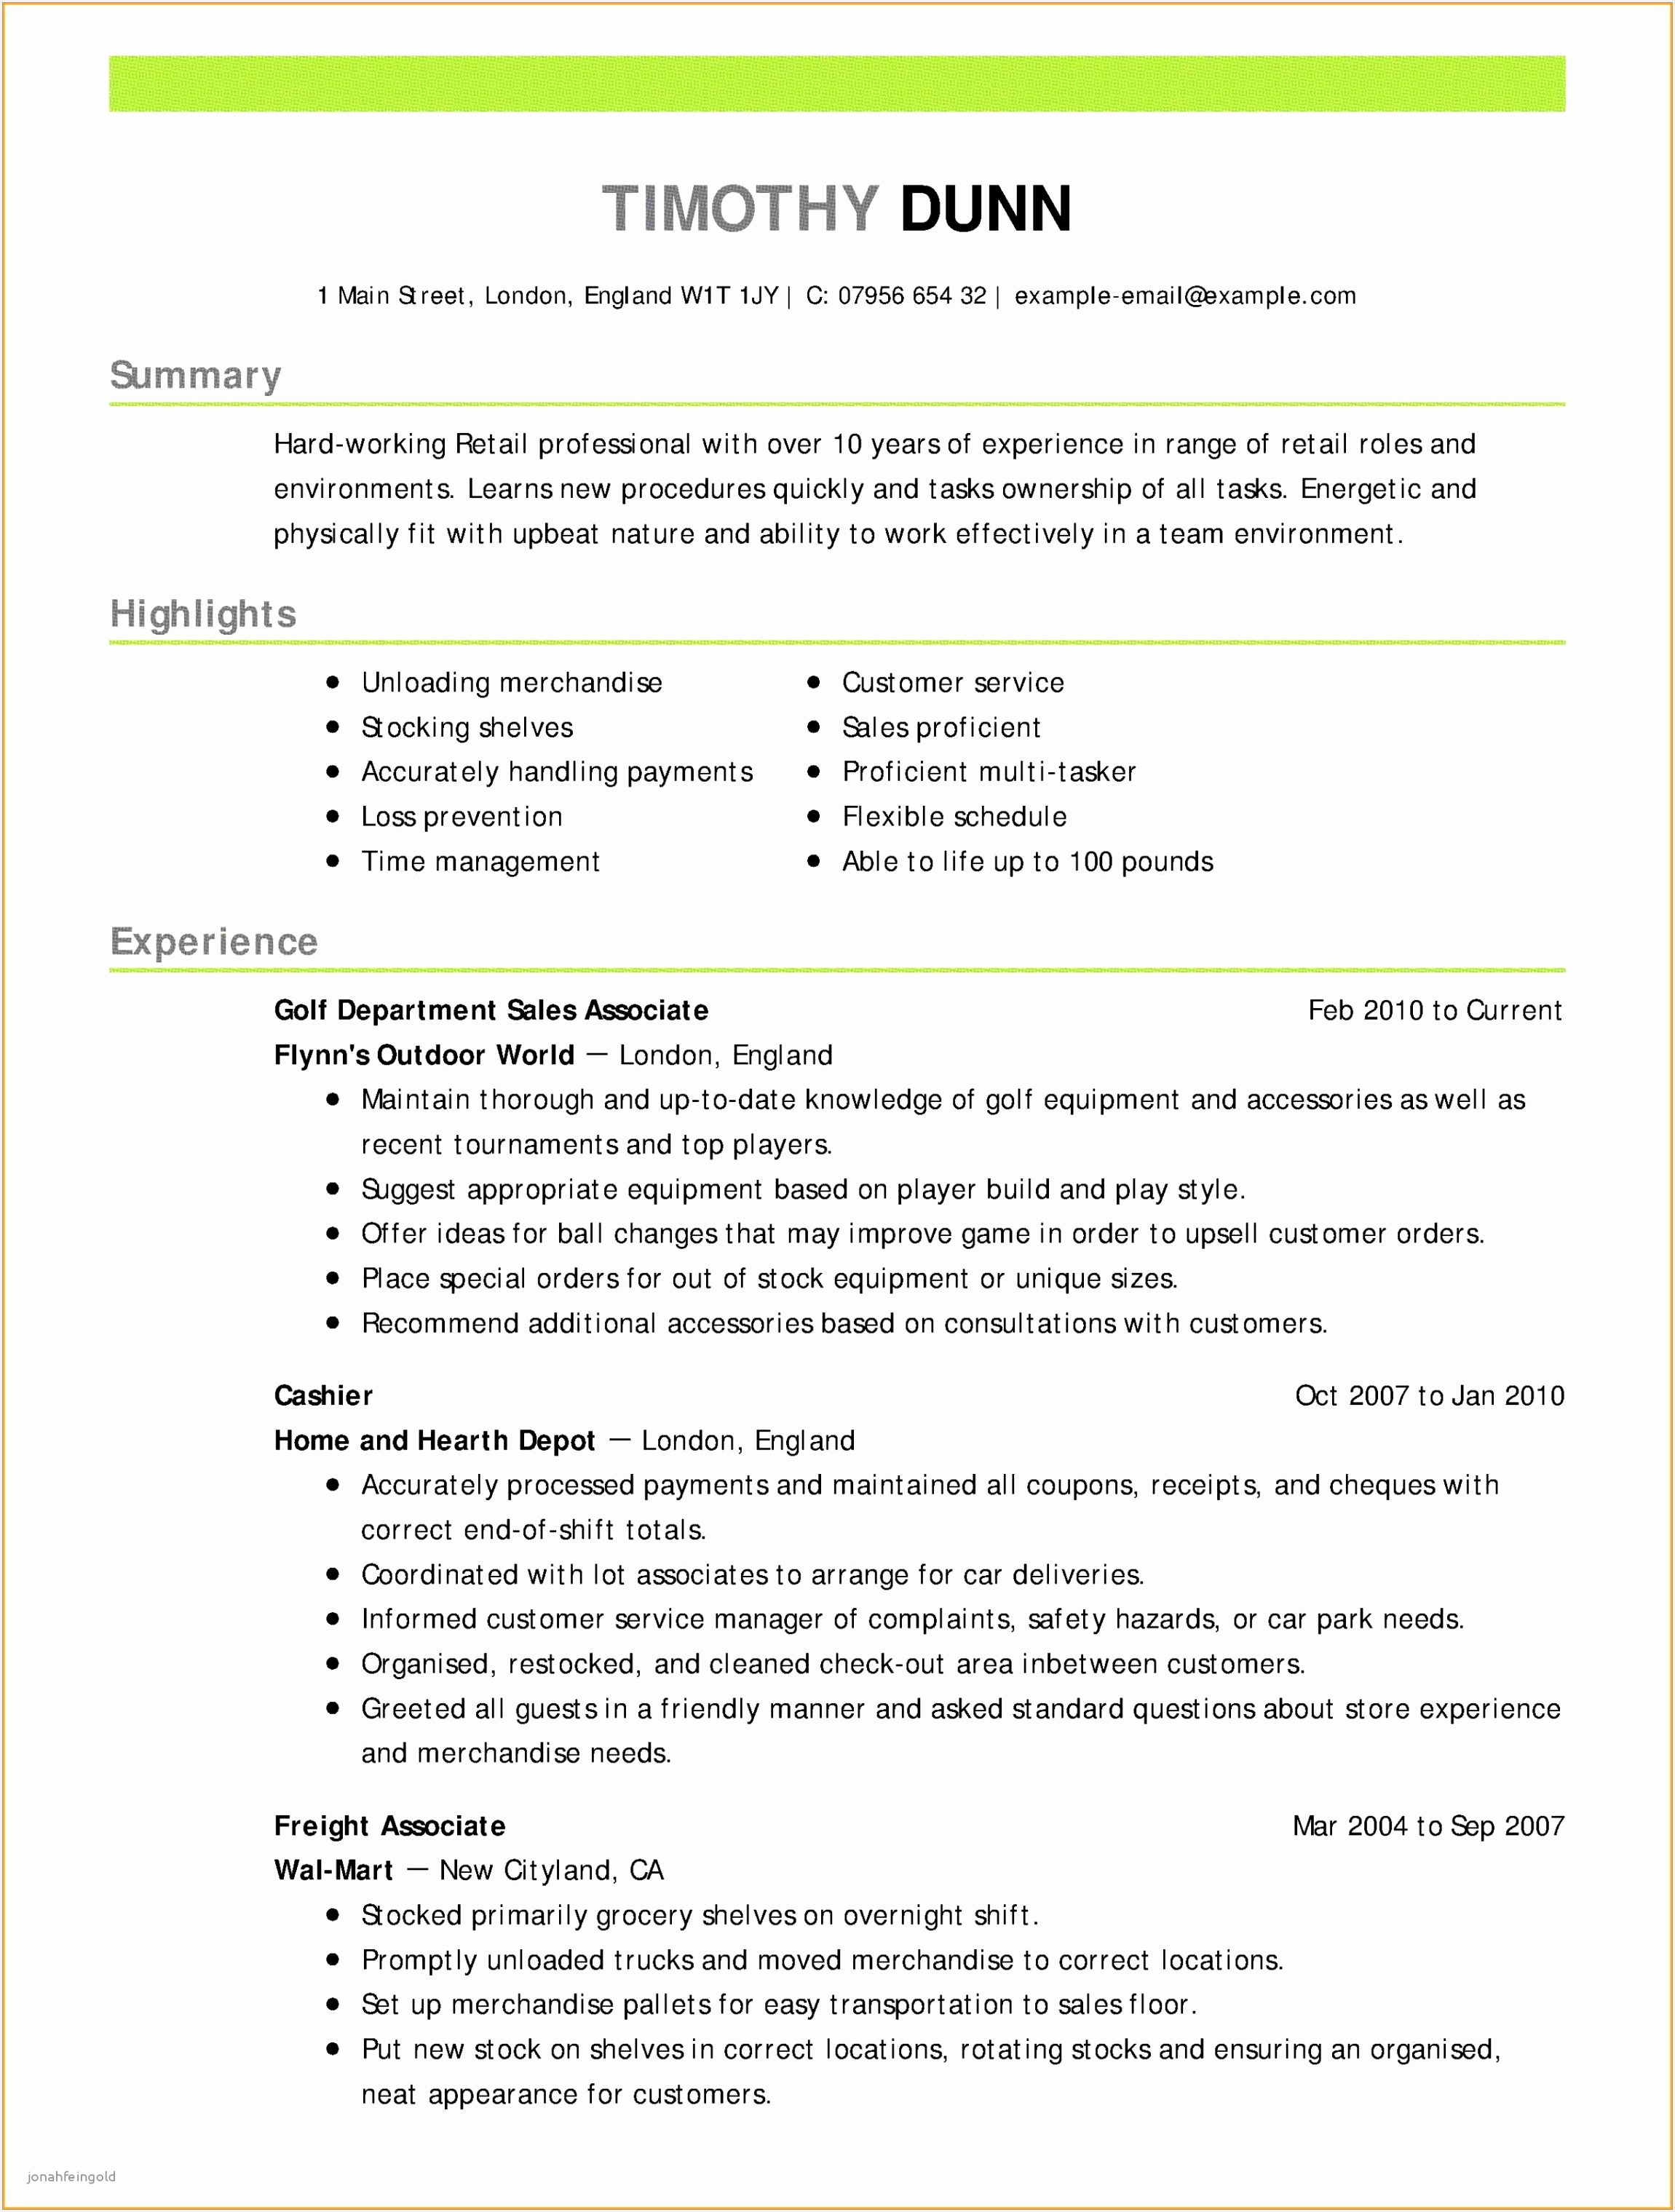 Examples Resumes for Jobs Favnh Fresh It Resume Job Descriptions Examples New It Resume Skills Unique Of Examples Resumes for Jobs J0iah Inspirational 46 Ideal Resume Examples for Jobs Od U – Resume Samples